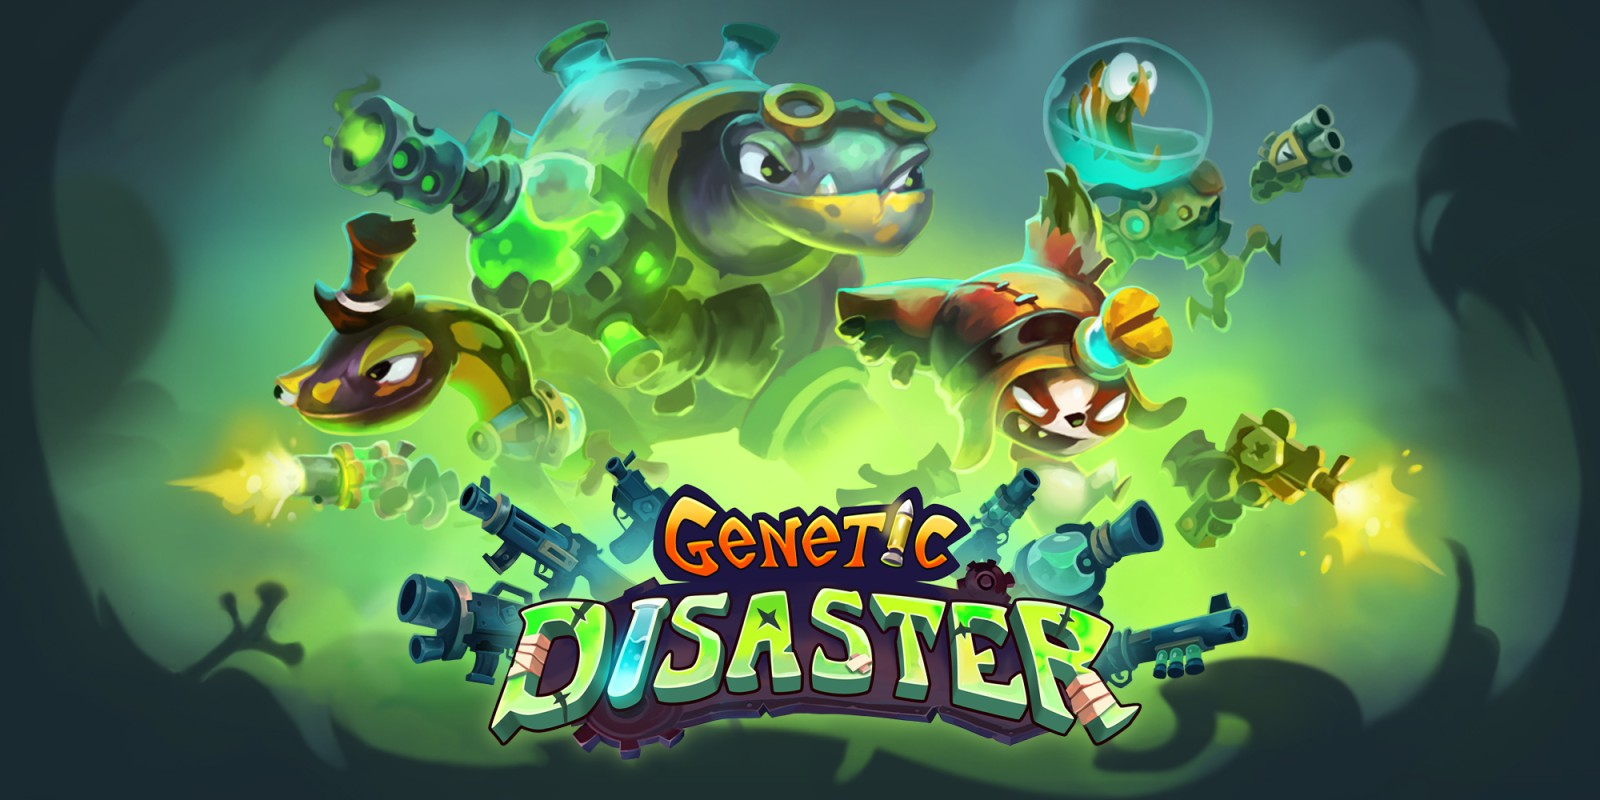 Genetic Disaster